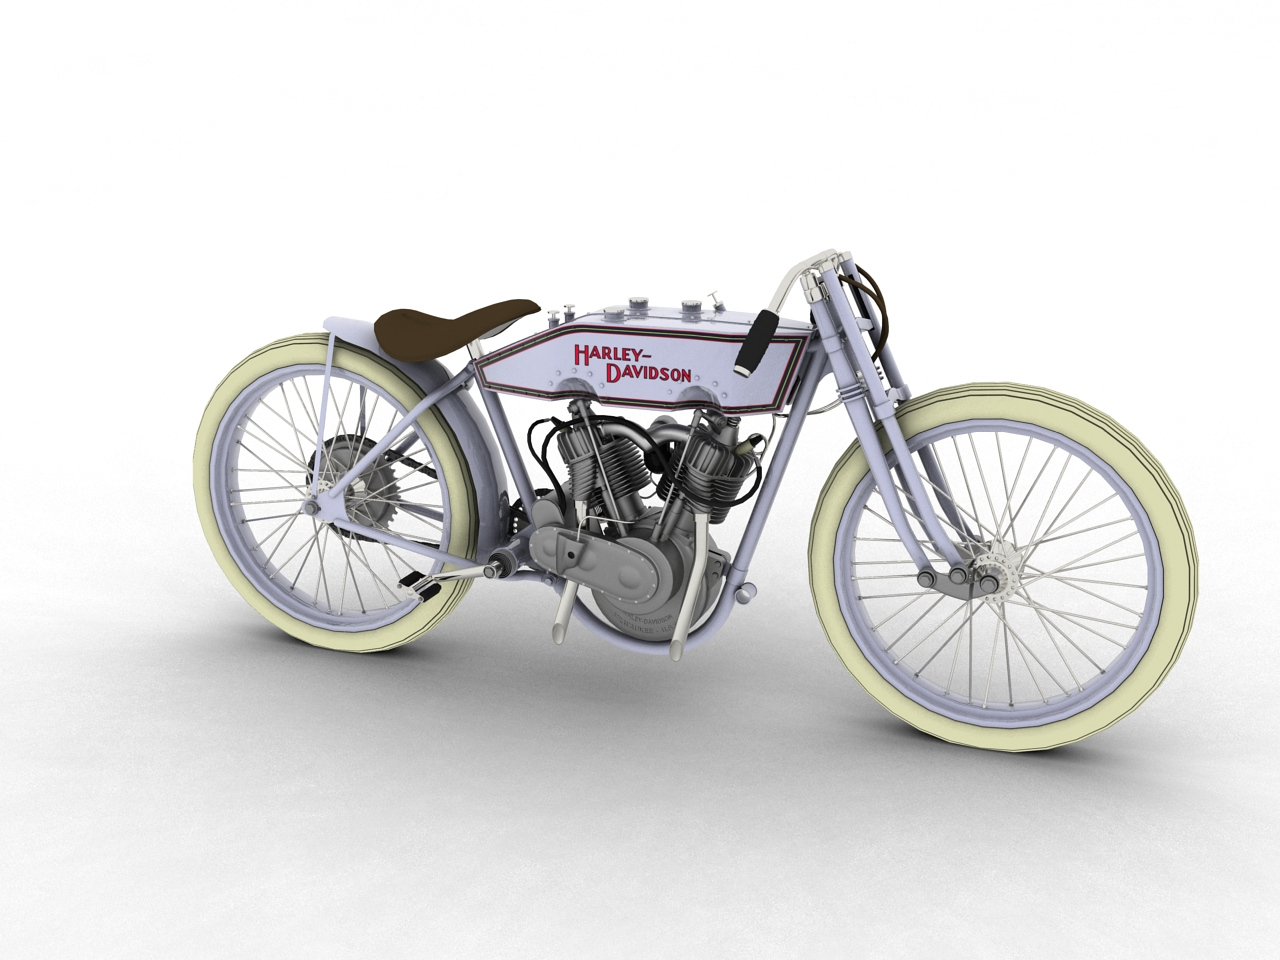 harley-davidson 11k boardtrack 1915 3d model 3ds max fbx c4d obj 155191